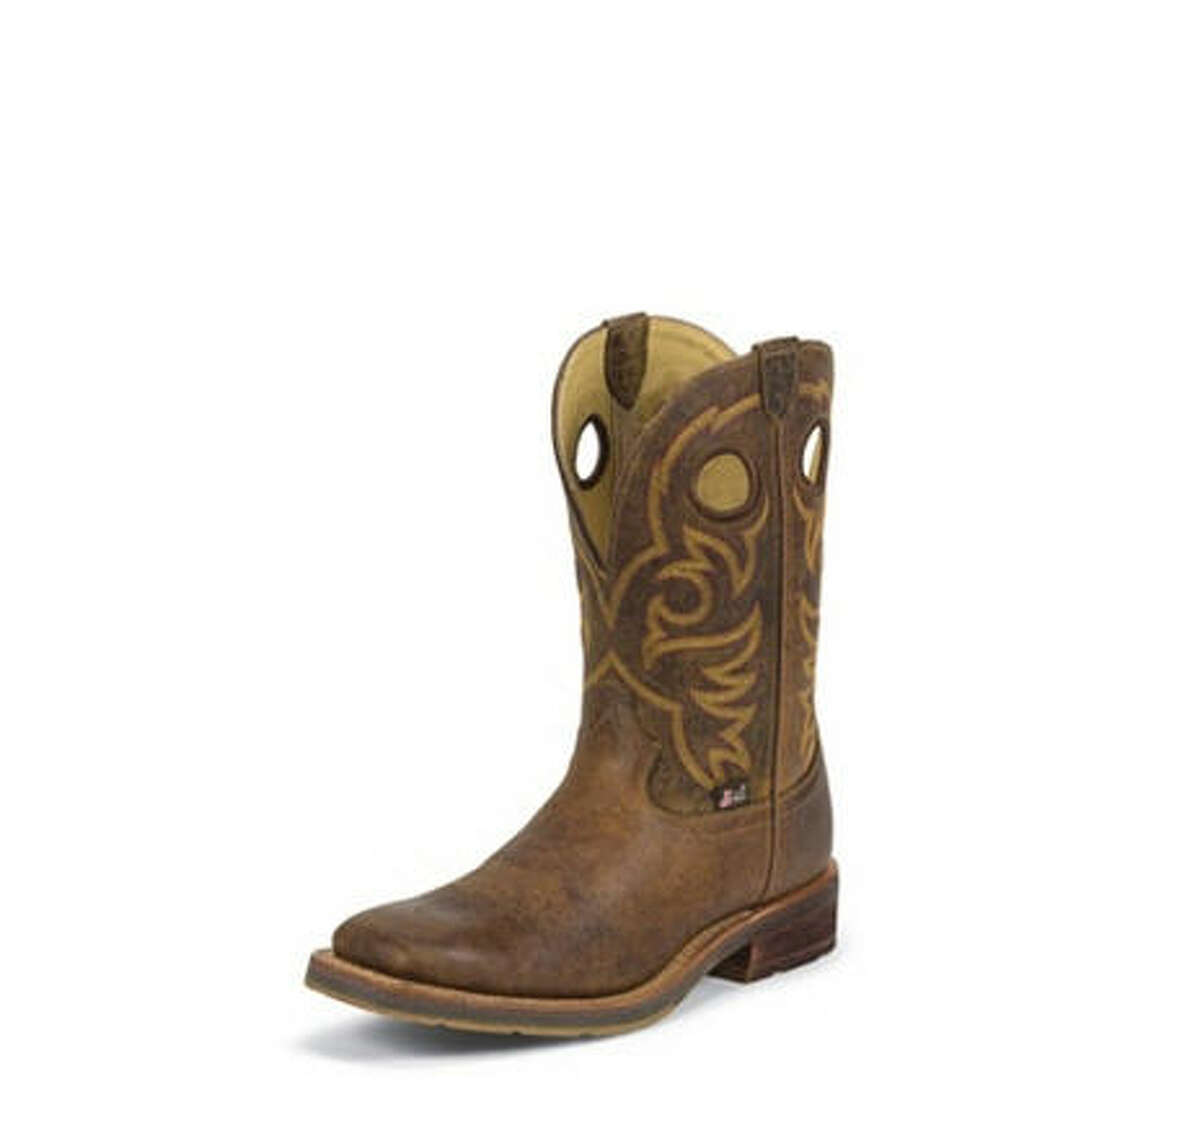 Justin Boots H.J. Justin founded the bootmaker in 1879 in Spanish Fort. In 1910 a pair of Justin boots was only $11. These days they are a bit more than that. The author is even wearing a pair now. He says they give him special writing powers, though that is debatable.